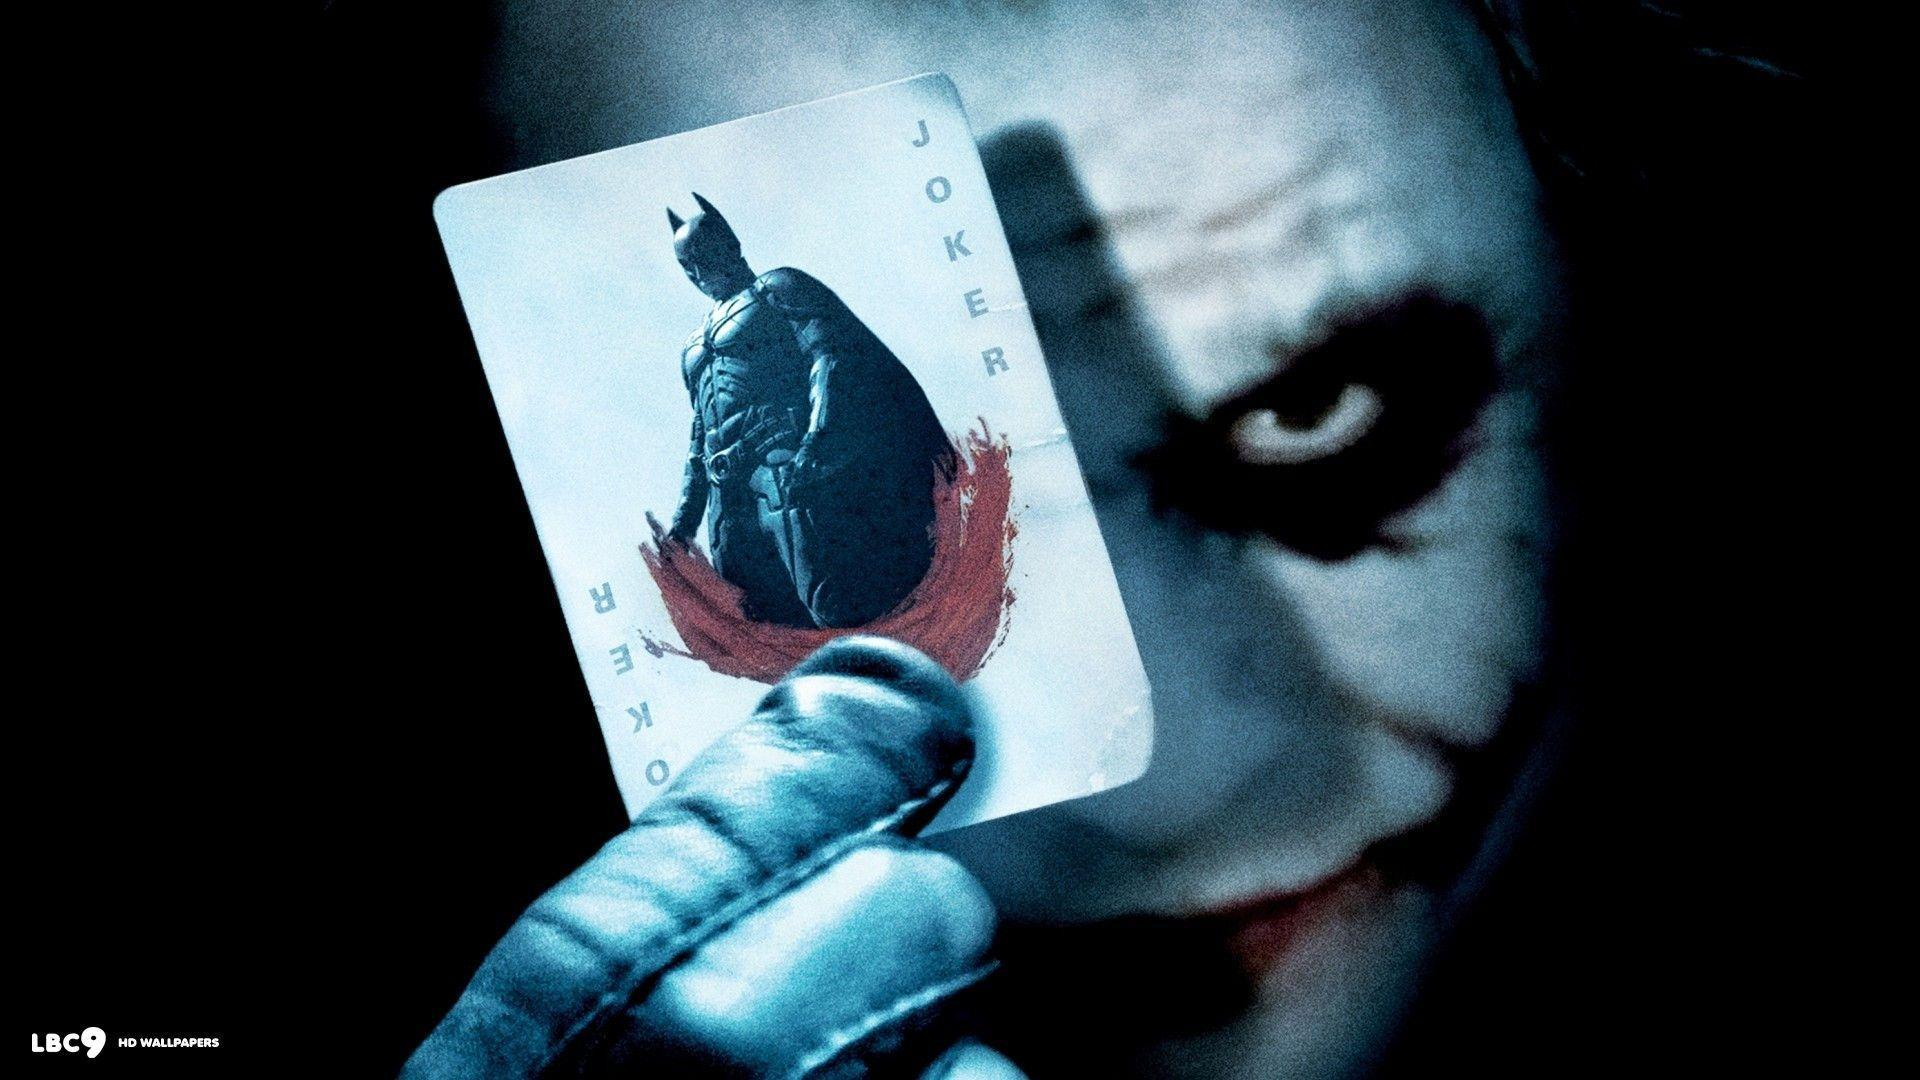 Wallpapers For > Joker Wallpaper Dark Knight